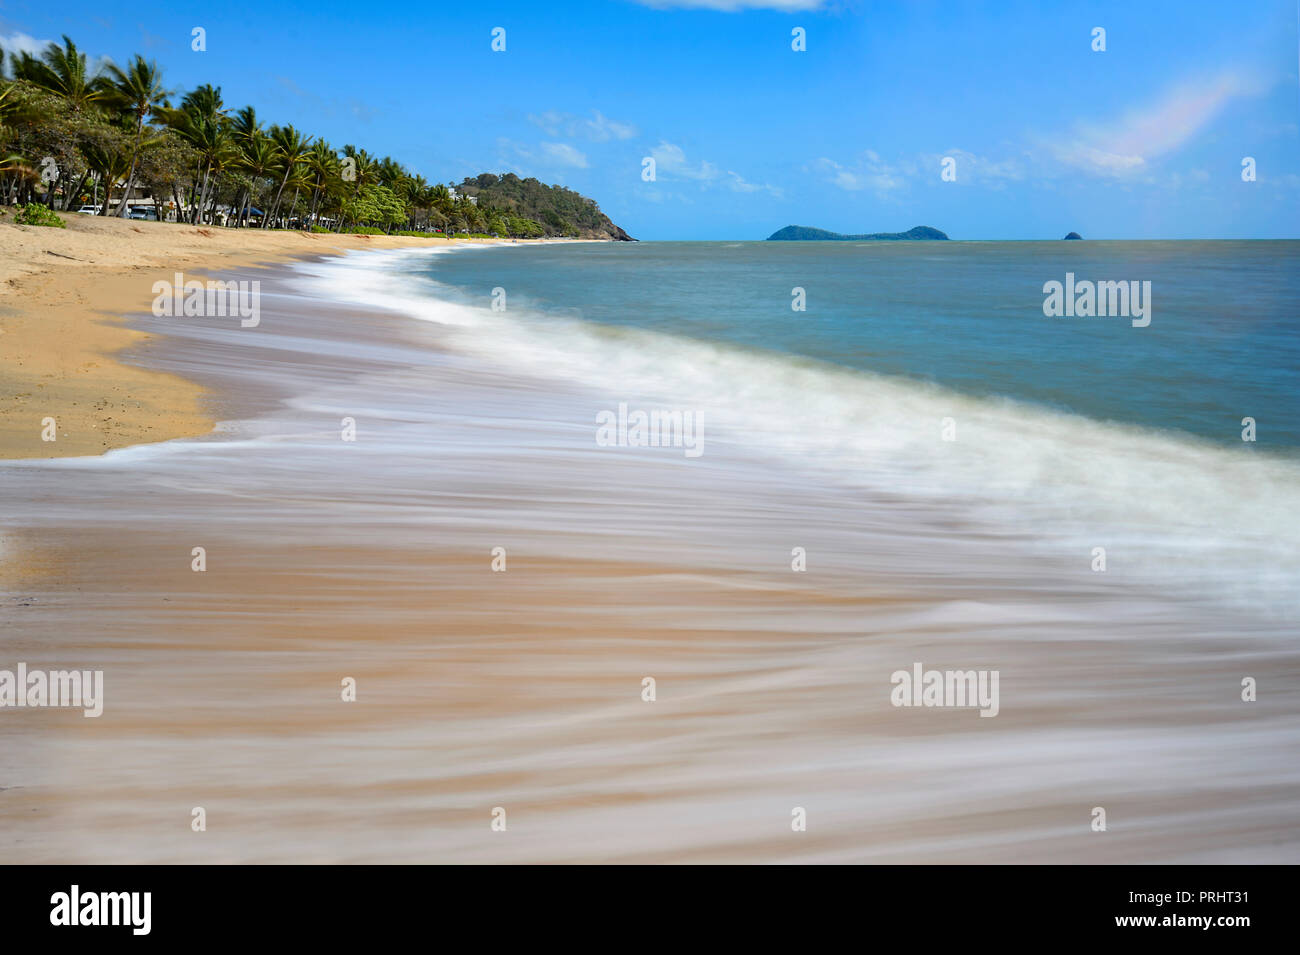 Motion blur of lapping waves at the scenic exotic Trinity Beach, Cairns Northern Beaches, Far North Queensland, FNQ, QLD, Australia - Stock Image